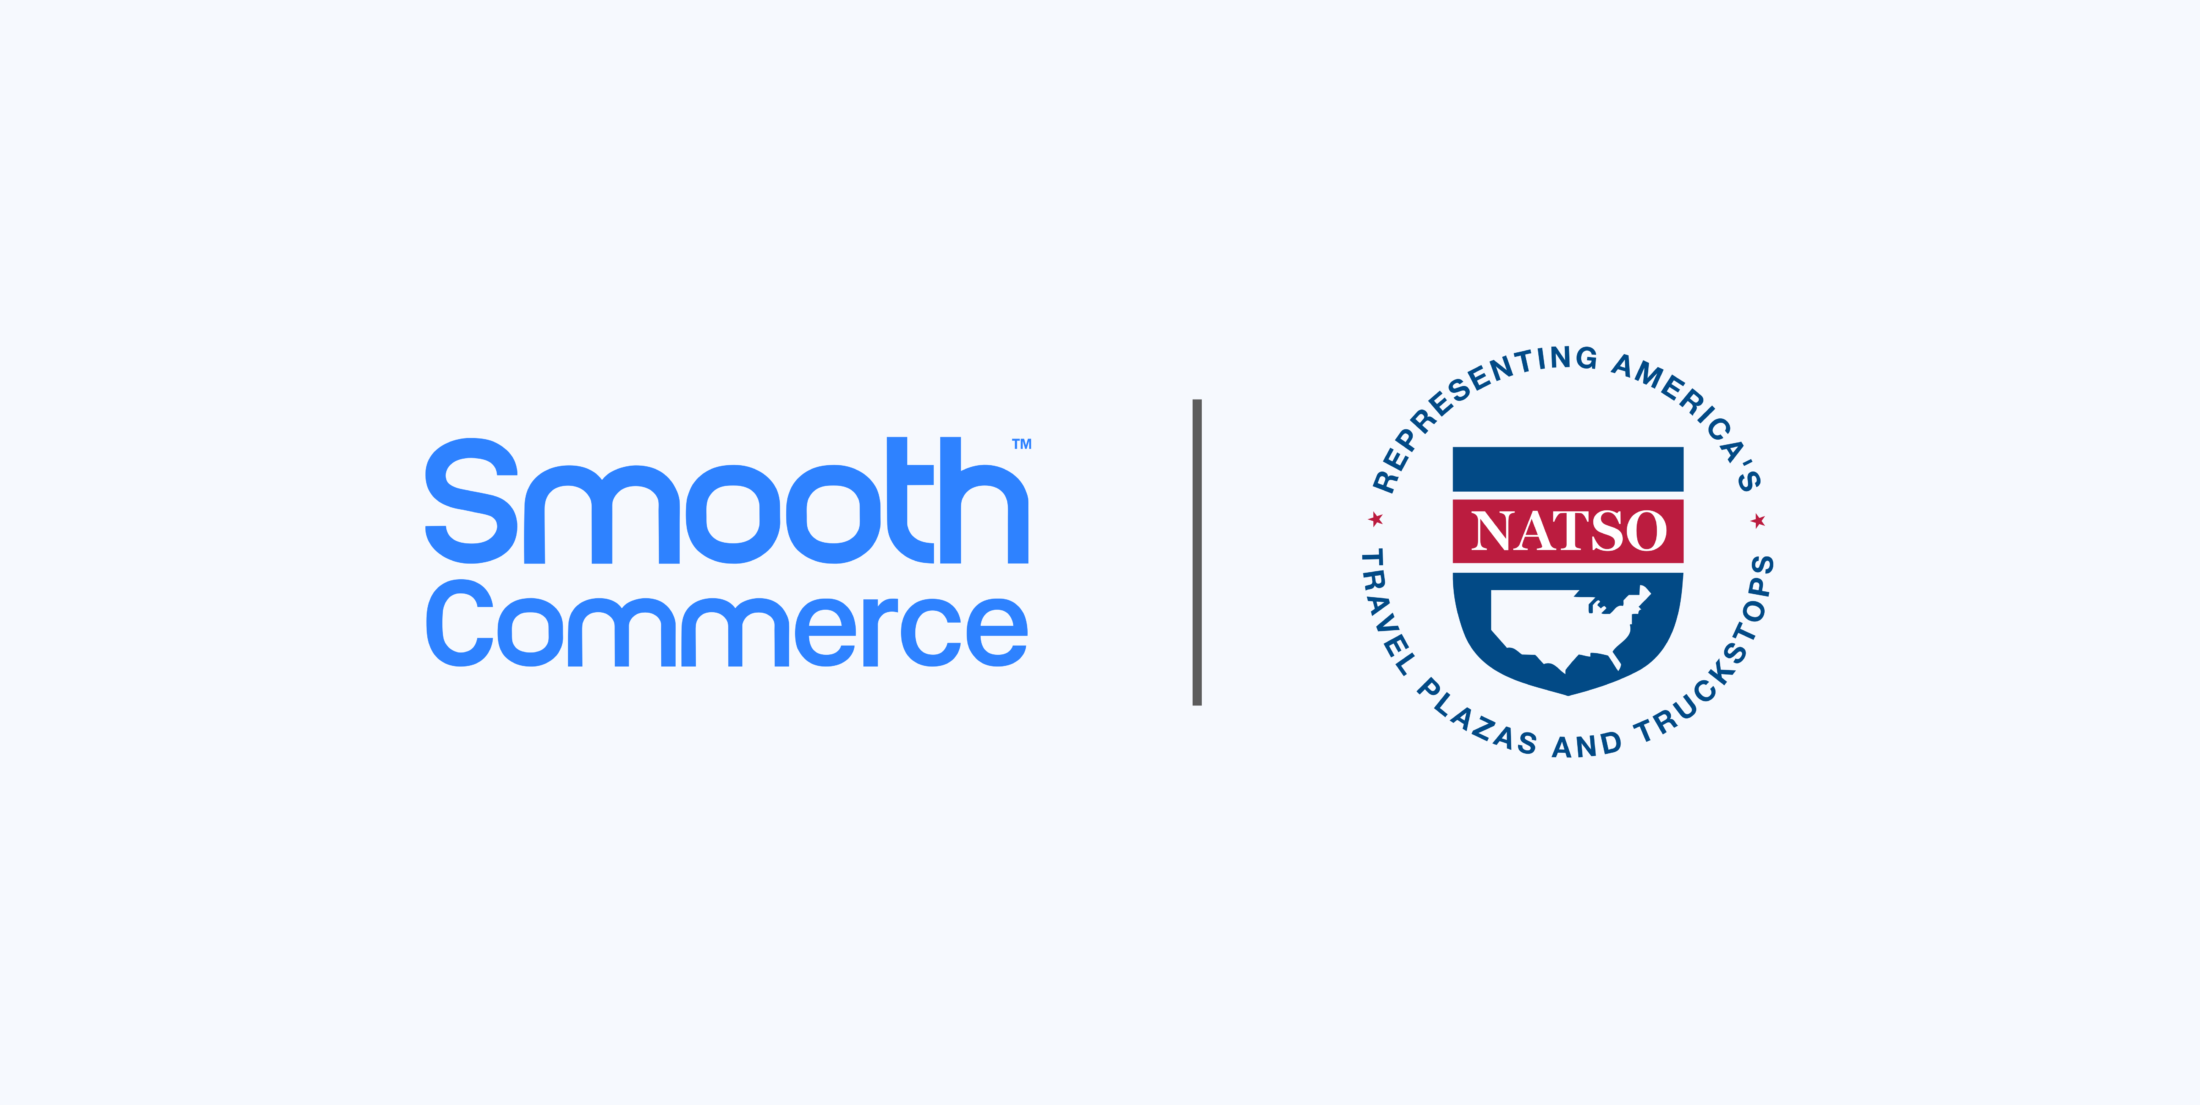 Smooth Commerce and NATSO logos